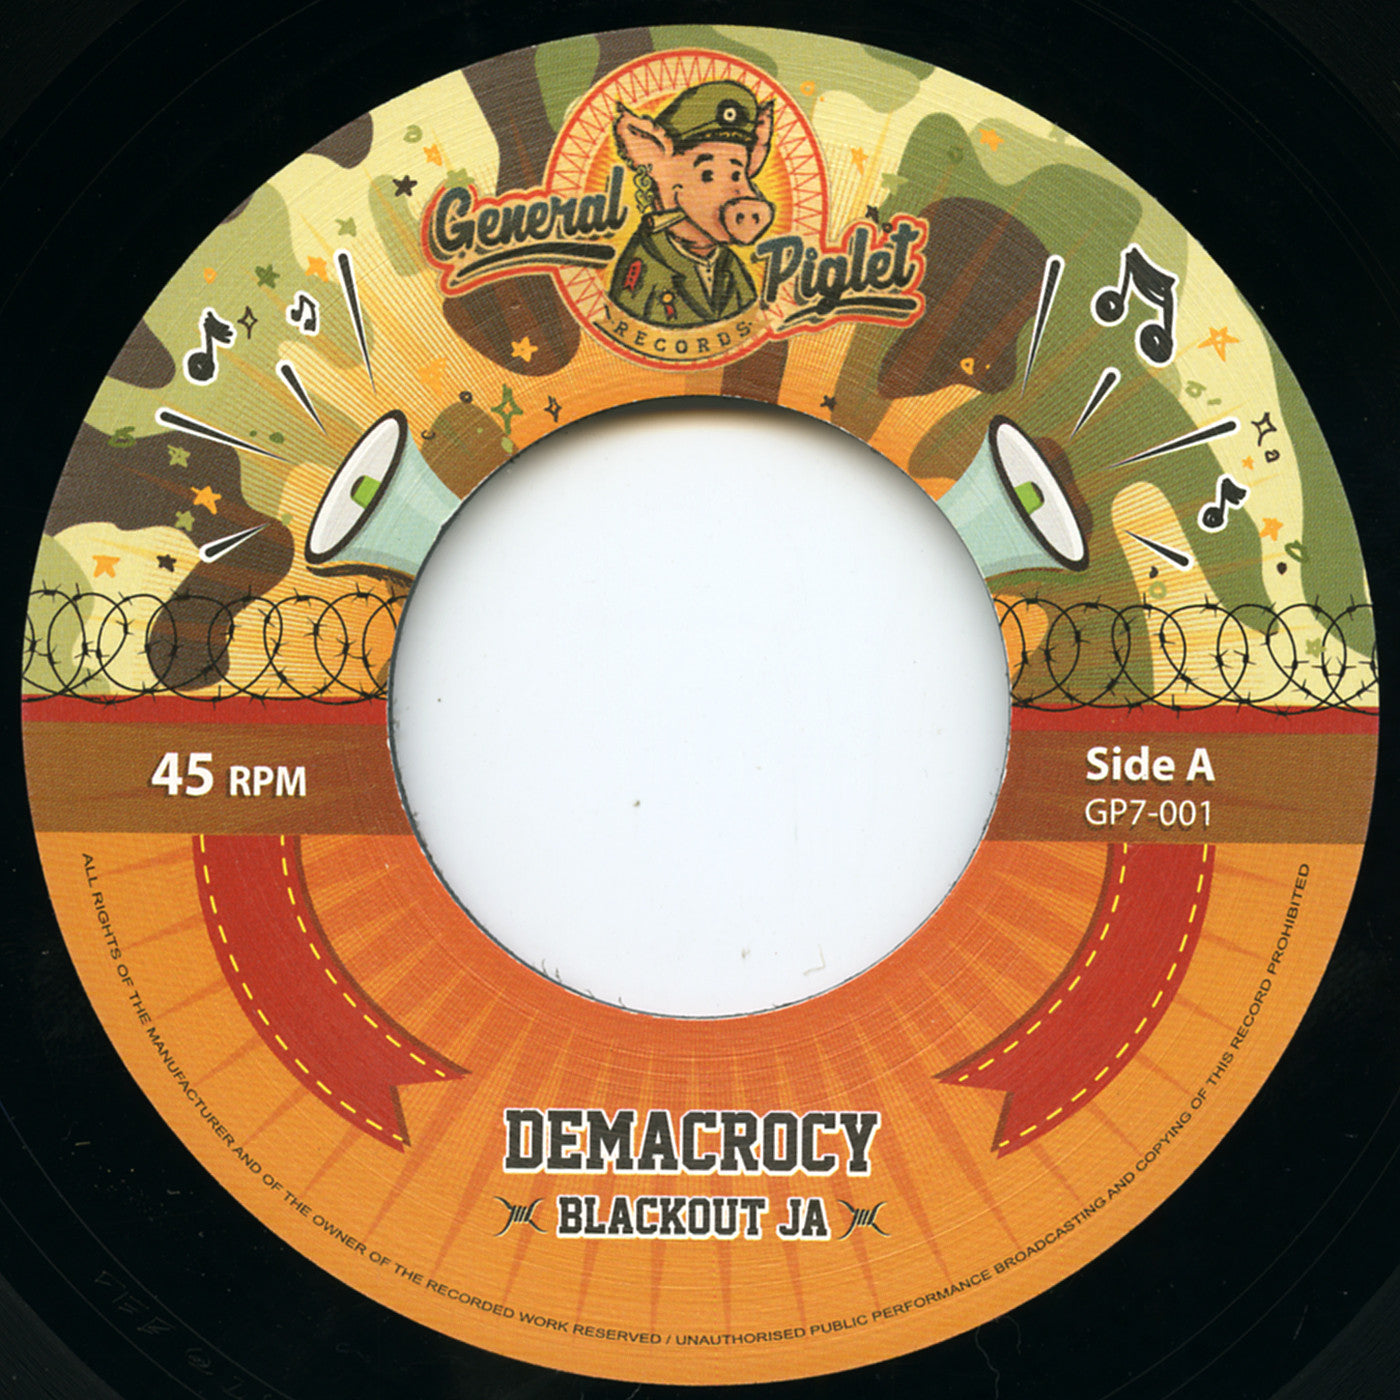 Blackout JA - Demacrocy // Dubsy - Demacrodub , Vinyl - General Piglet, Unearthed Sounds